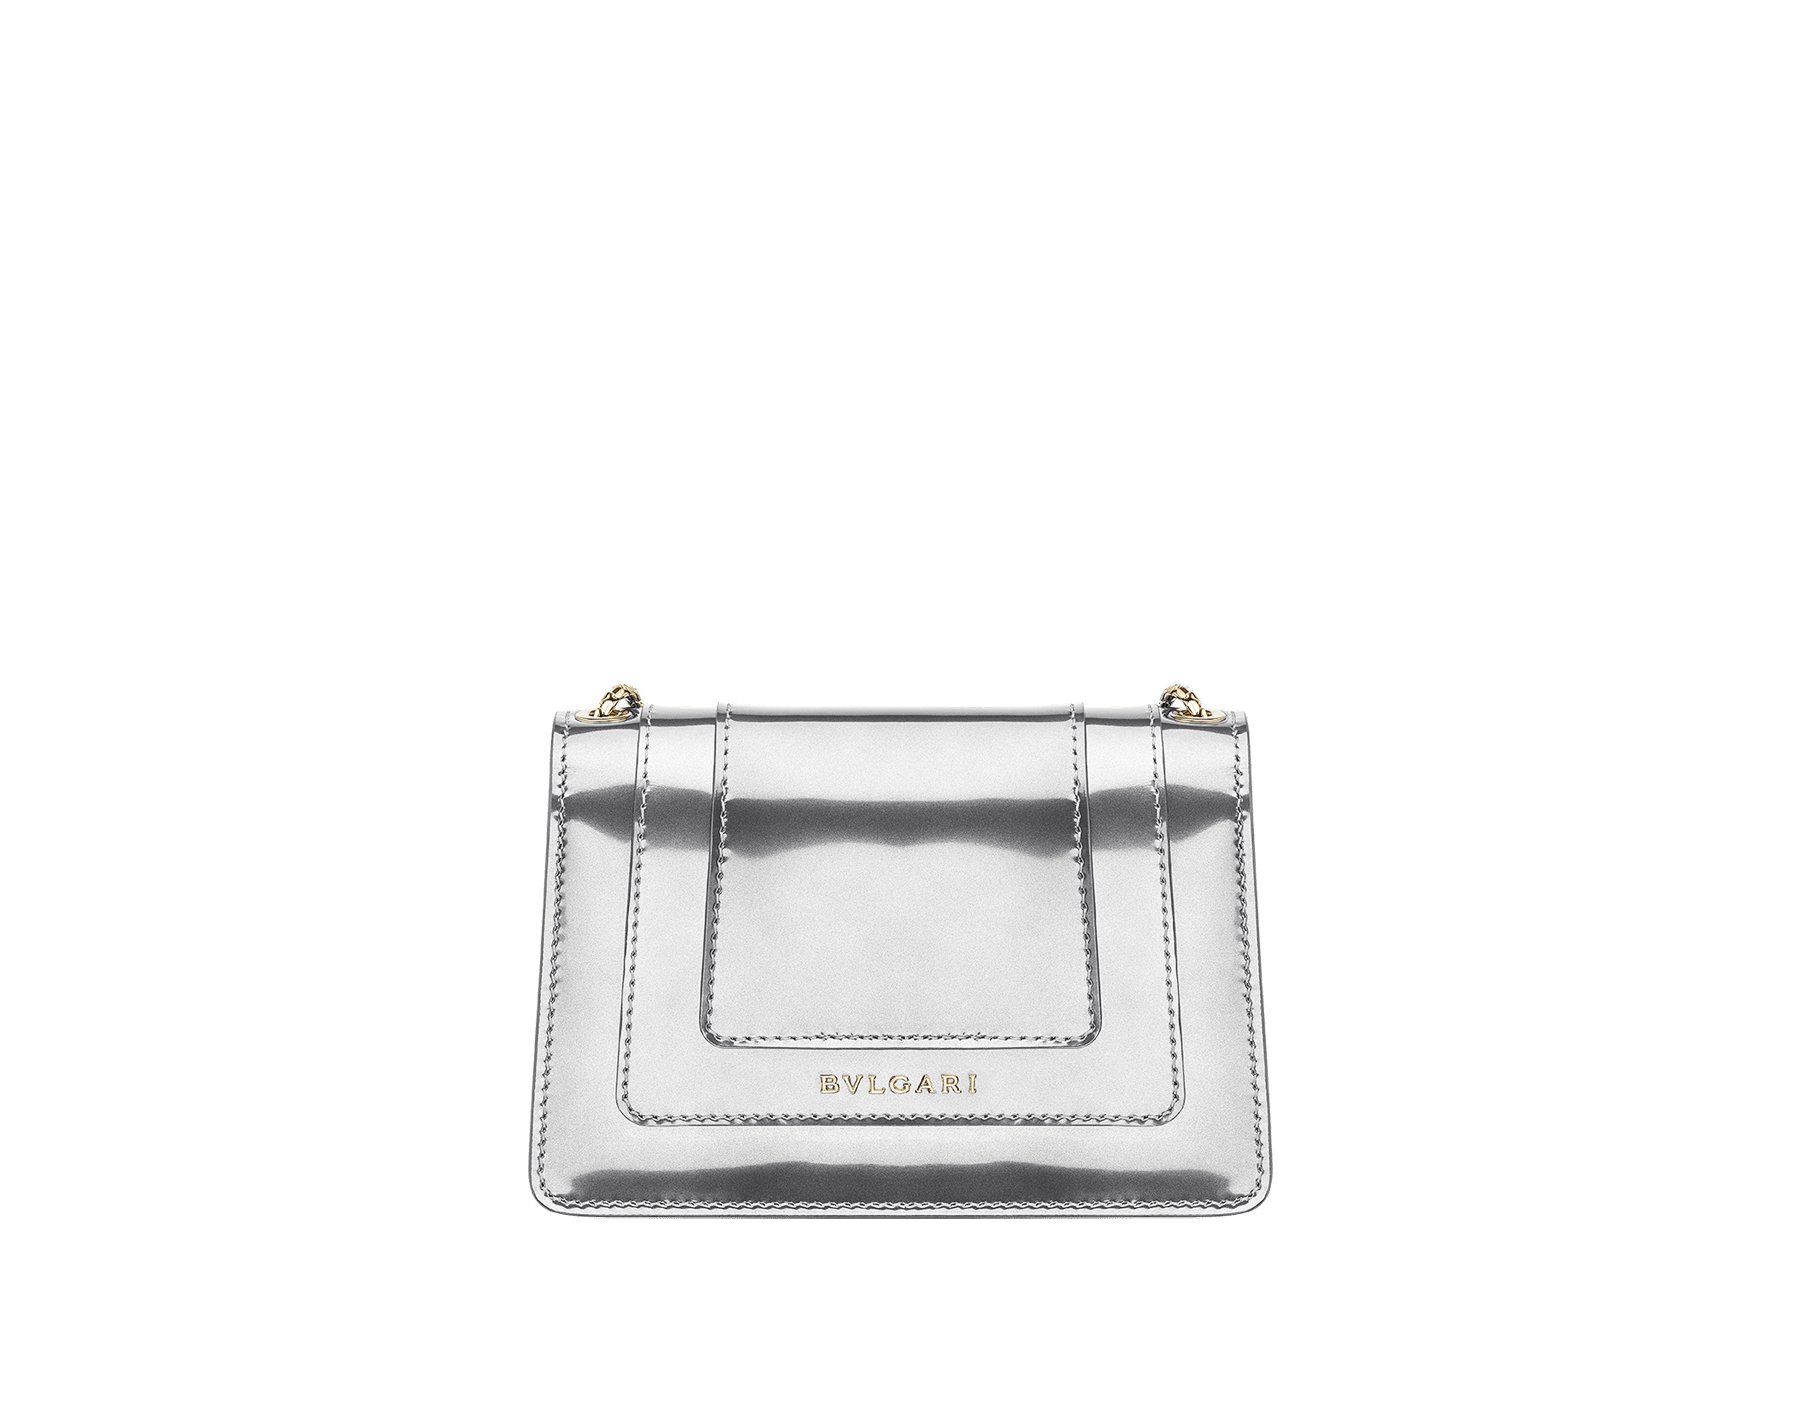 Serpenti Forever mini crossbody bag in silver brushed metallic calf leather. Brass light gold plated snake head closure in black and white enamel, with green malachite eyes. 288051 image 3